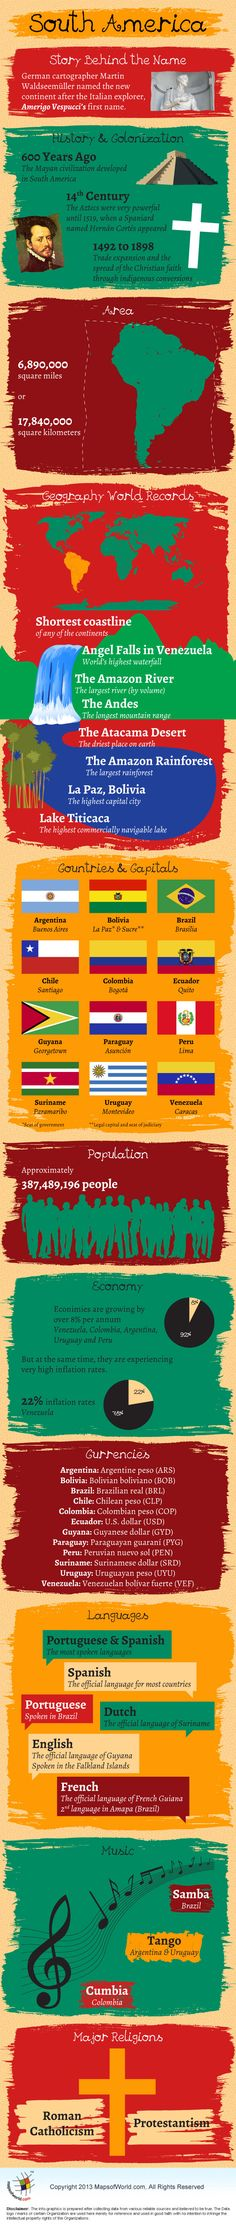 Infographic on South America Facts